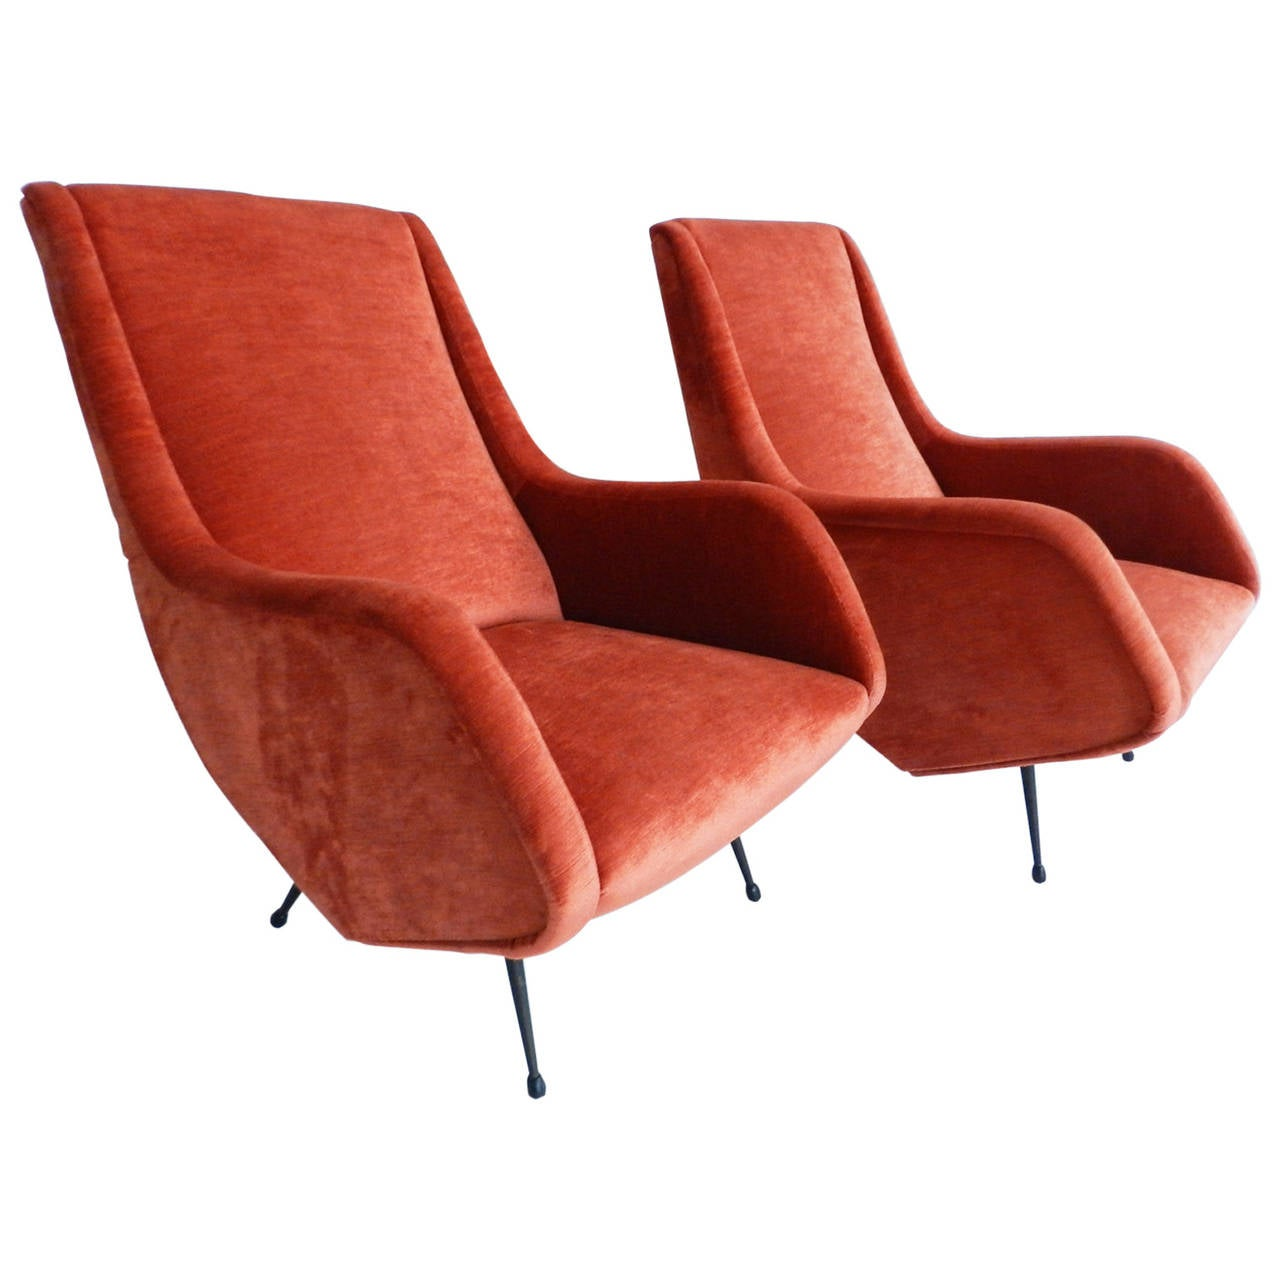 Two Armchairs Designed By Aldo Morbelli Edited By Isa